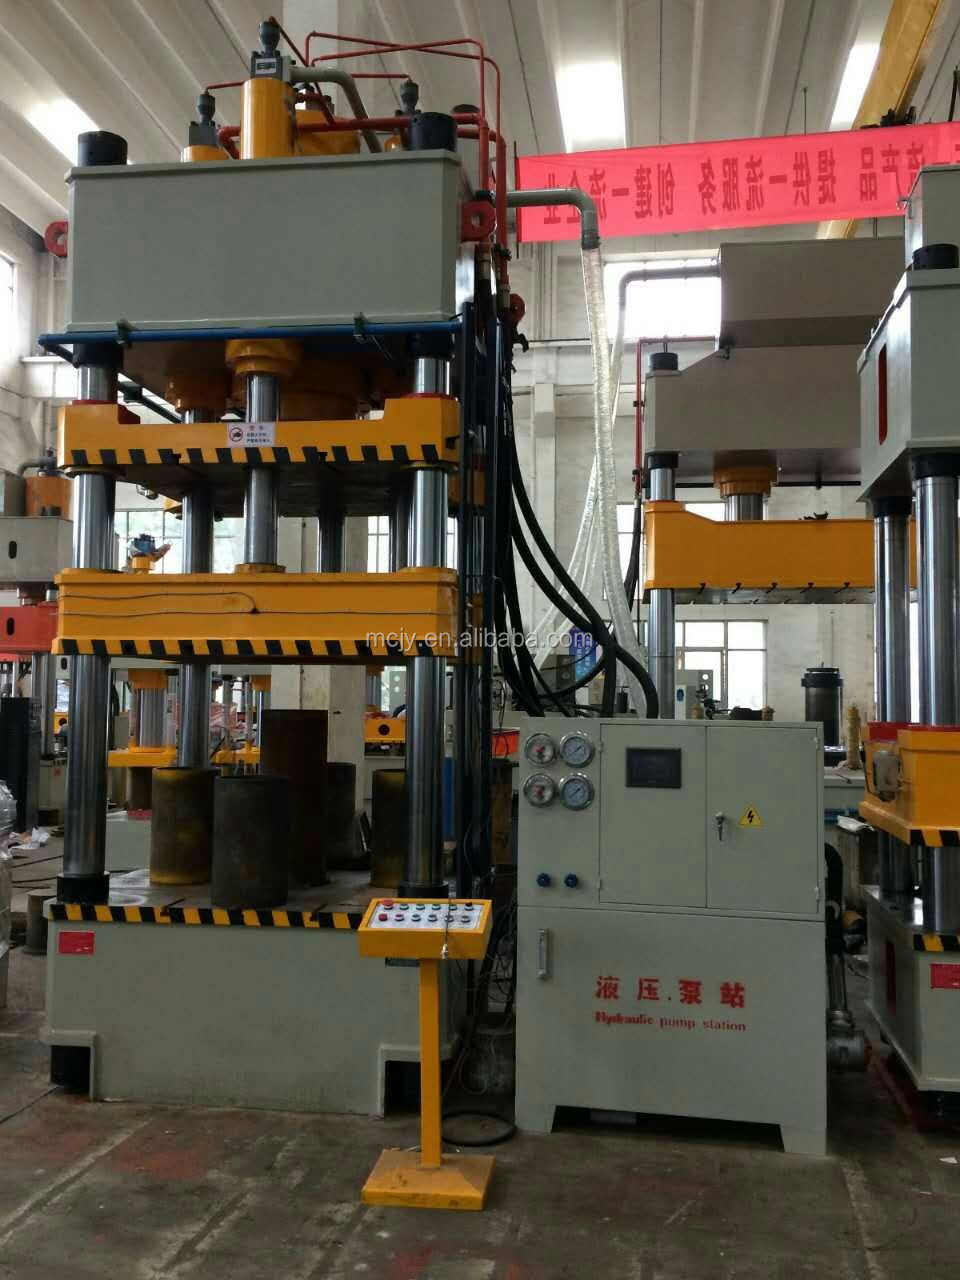 J21S 60T hydraulic power press sheet metal punching machine from China supplier